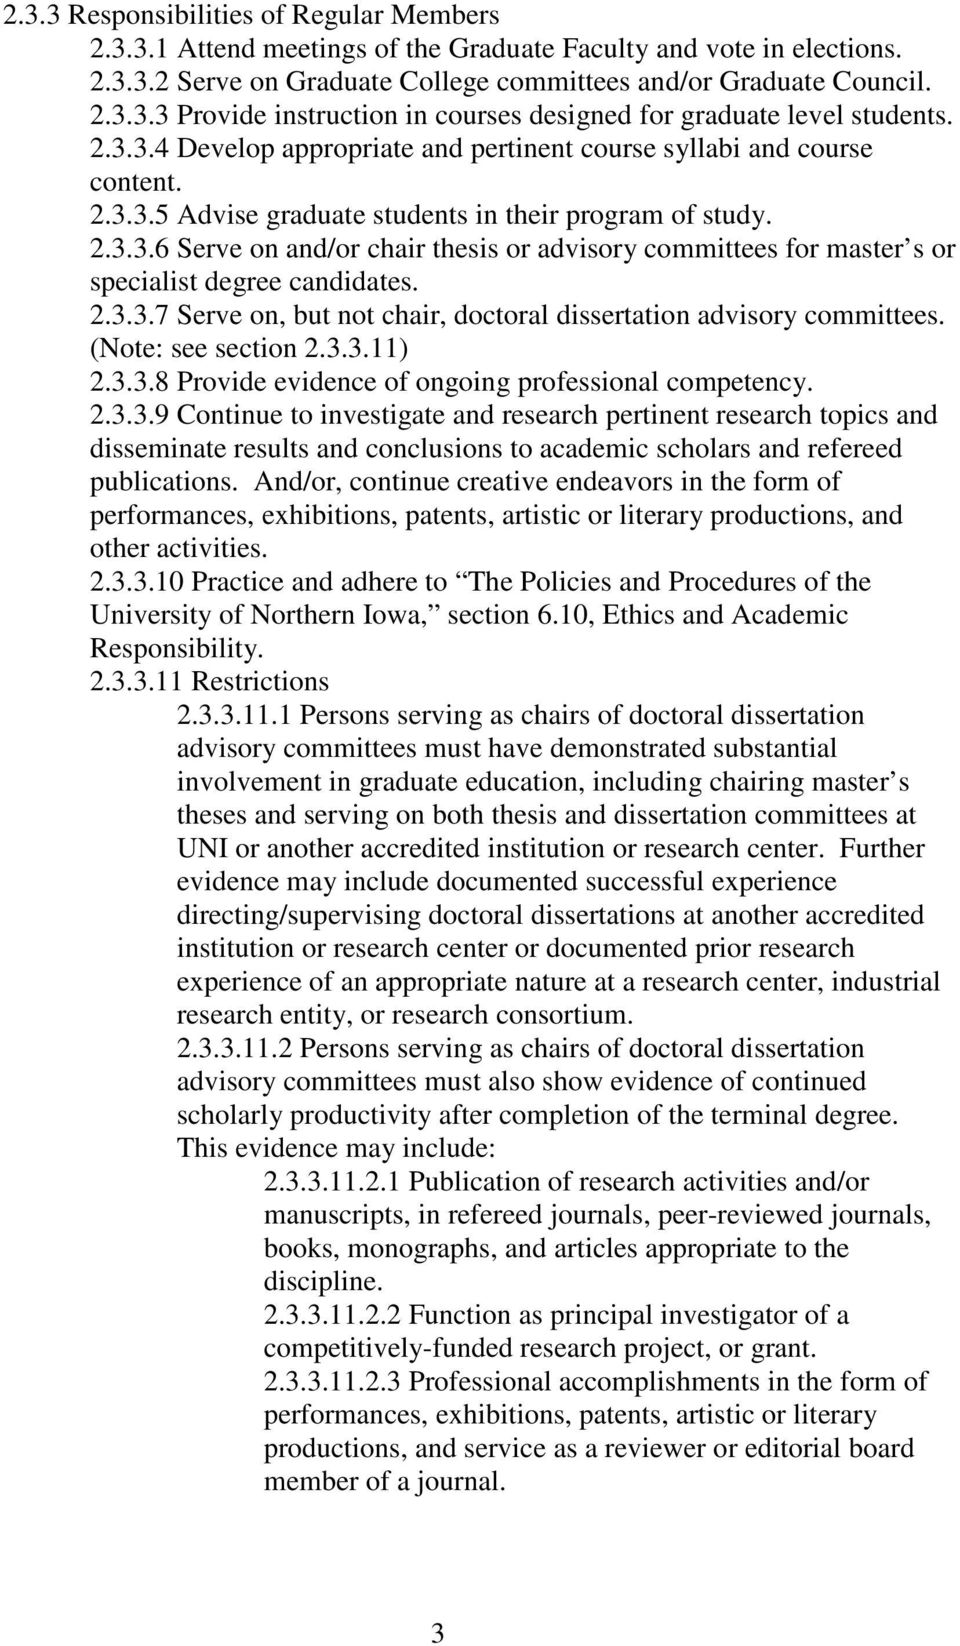 2.3.3.7 Serve on, but not chair, doctoral dissertation advisory committees. (Note: see section 2.3.3.11) 2.3.3.8 Provide evidence of ongoing professional competency. 2.3.3.9 Continue to investigate and research pertinent research topics and disseminate results and conclusions to academic scholars and refereed publications.